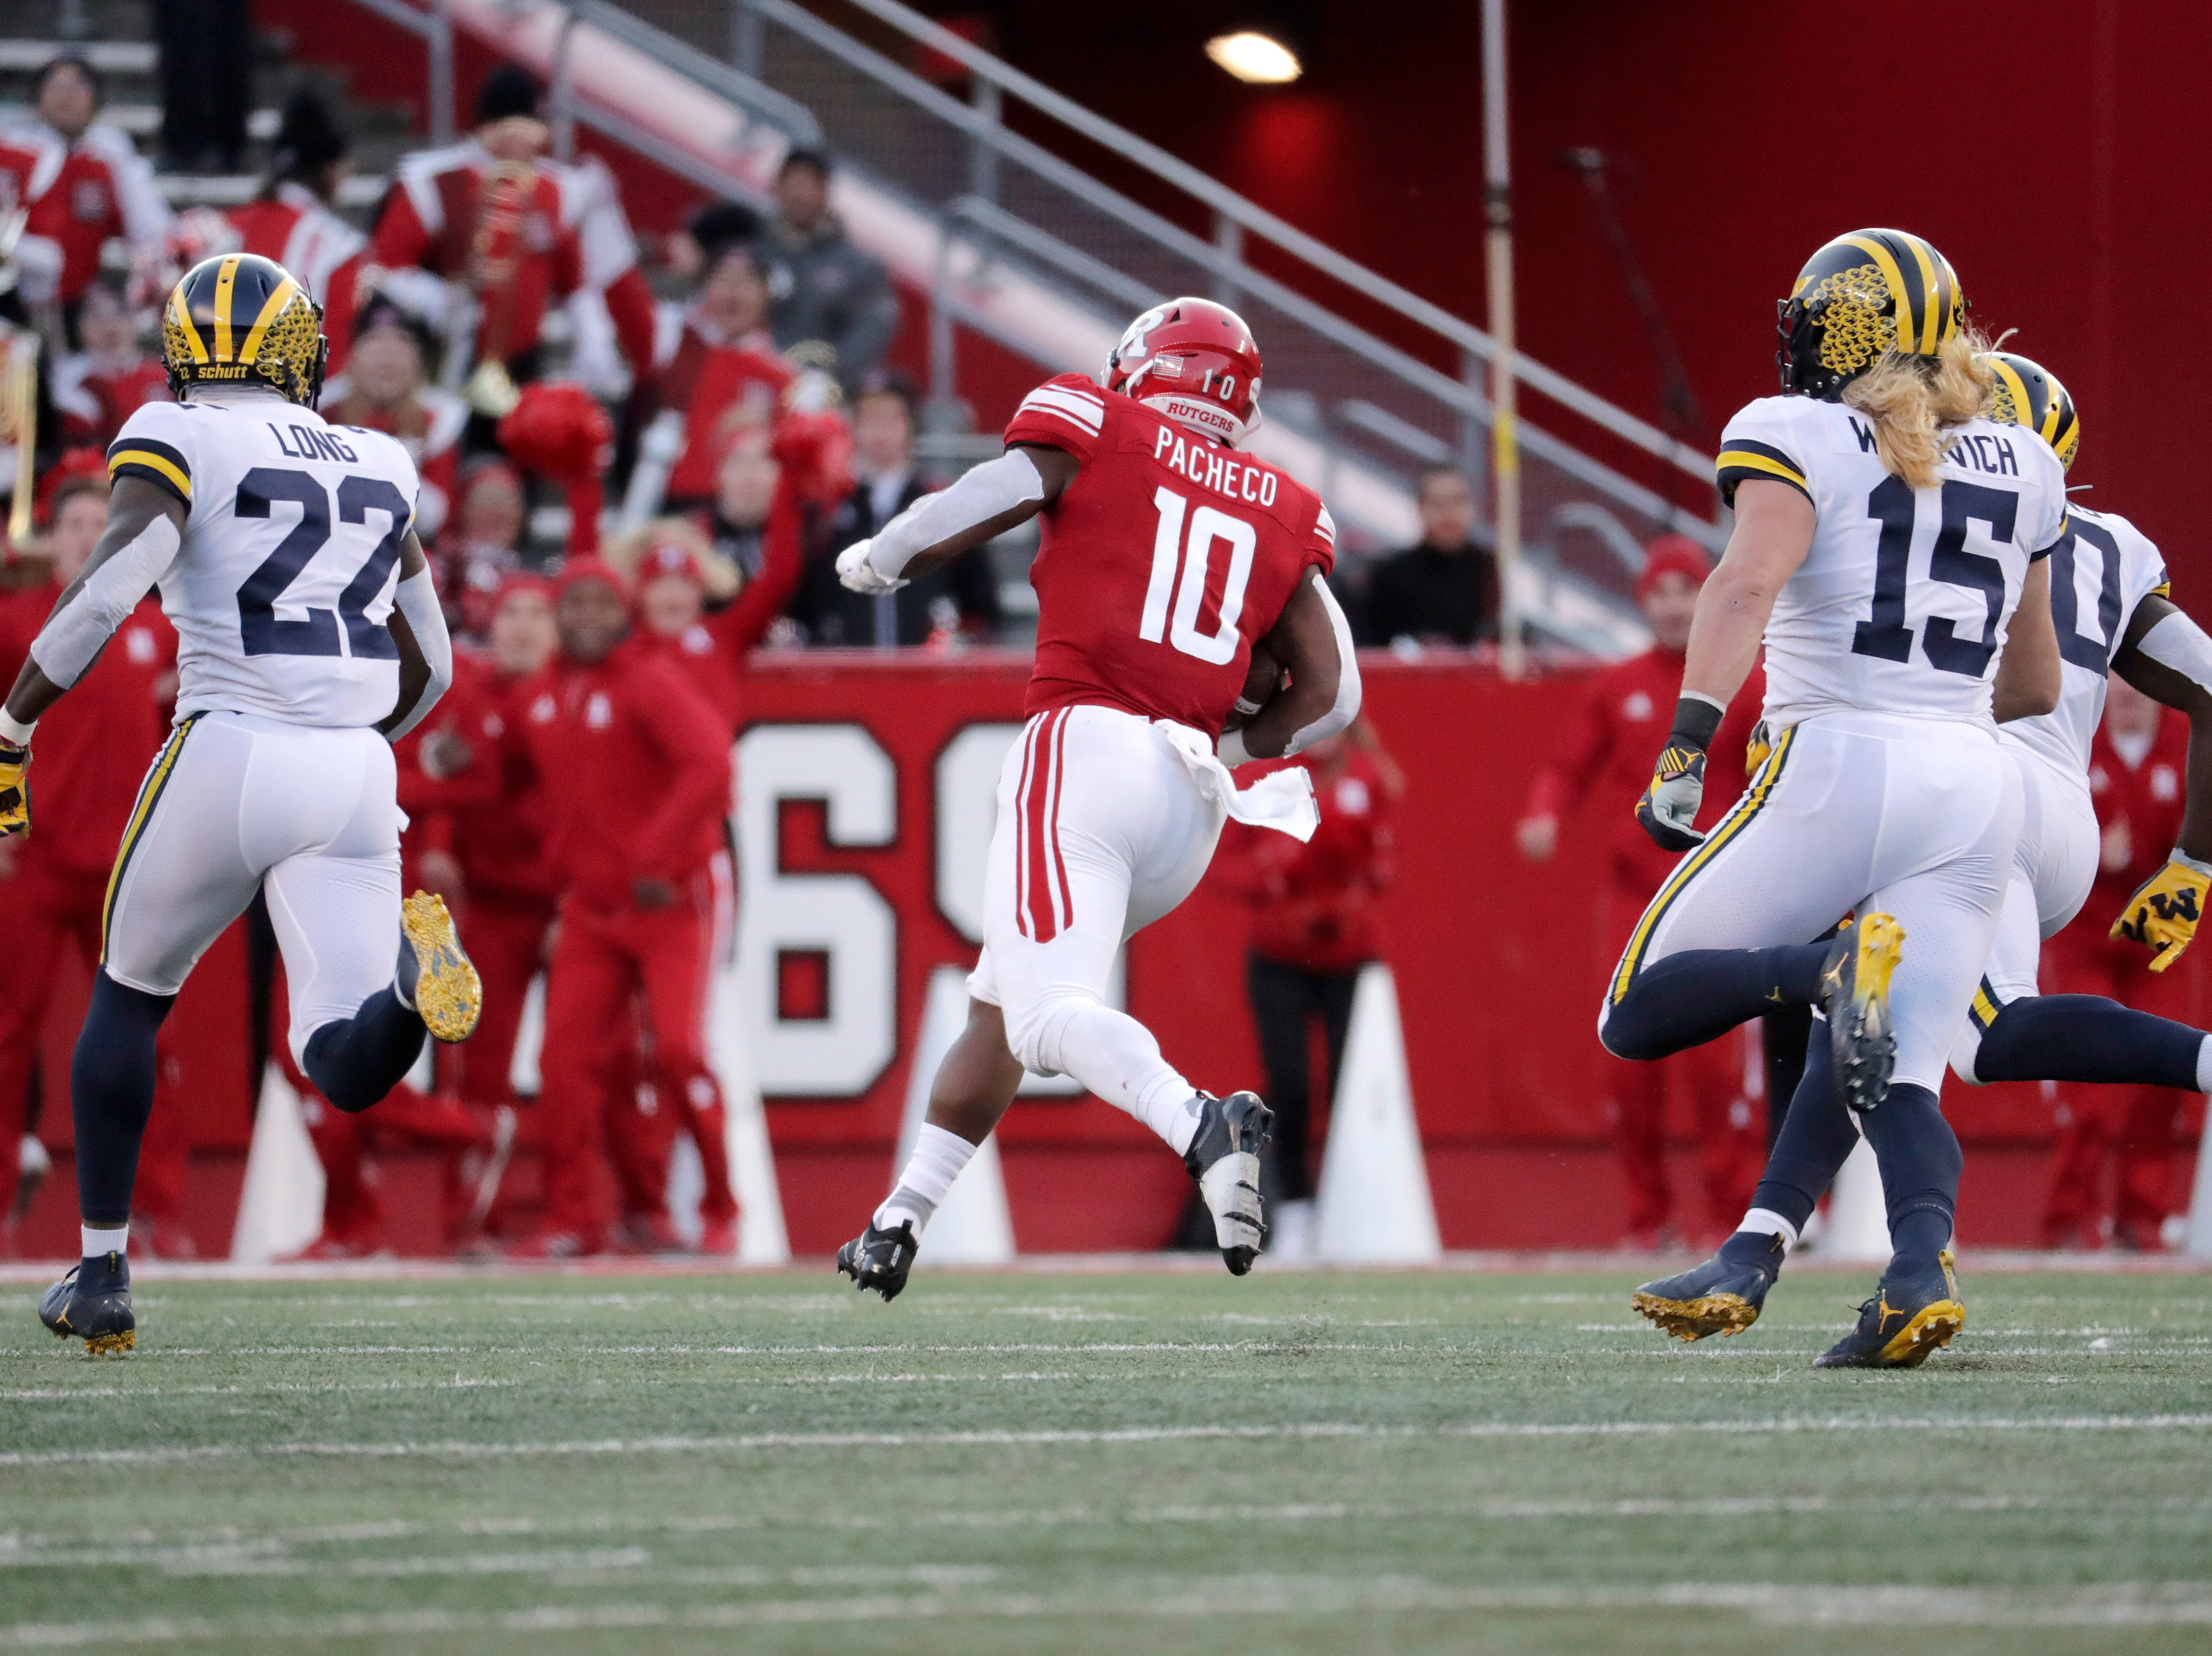 Rutgers running back Isaih Pacheco (10) breaks free for a long touchdown run as Michigan's David Long (22) and Chase Winovich (15) pursue.